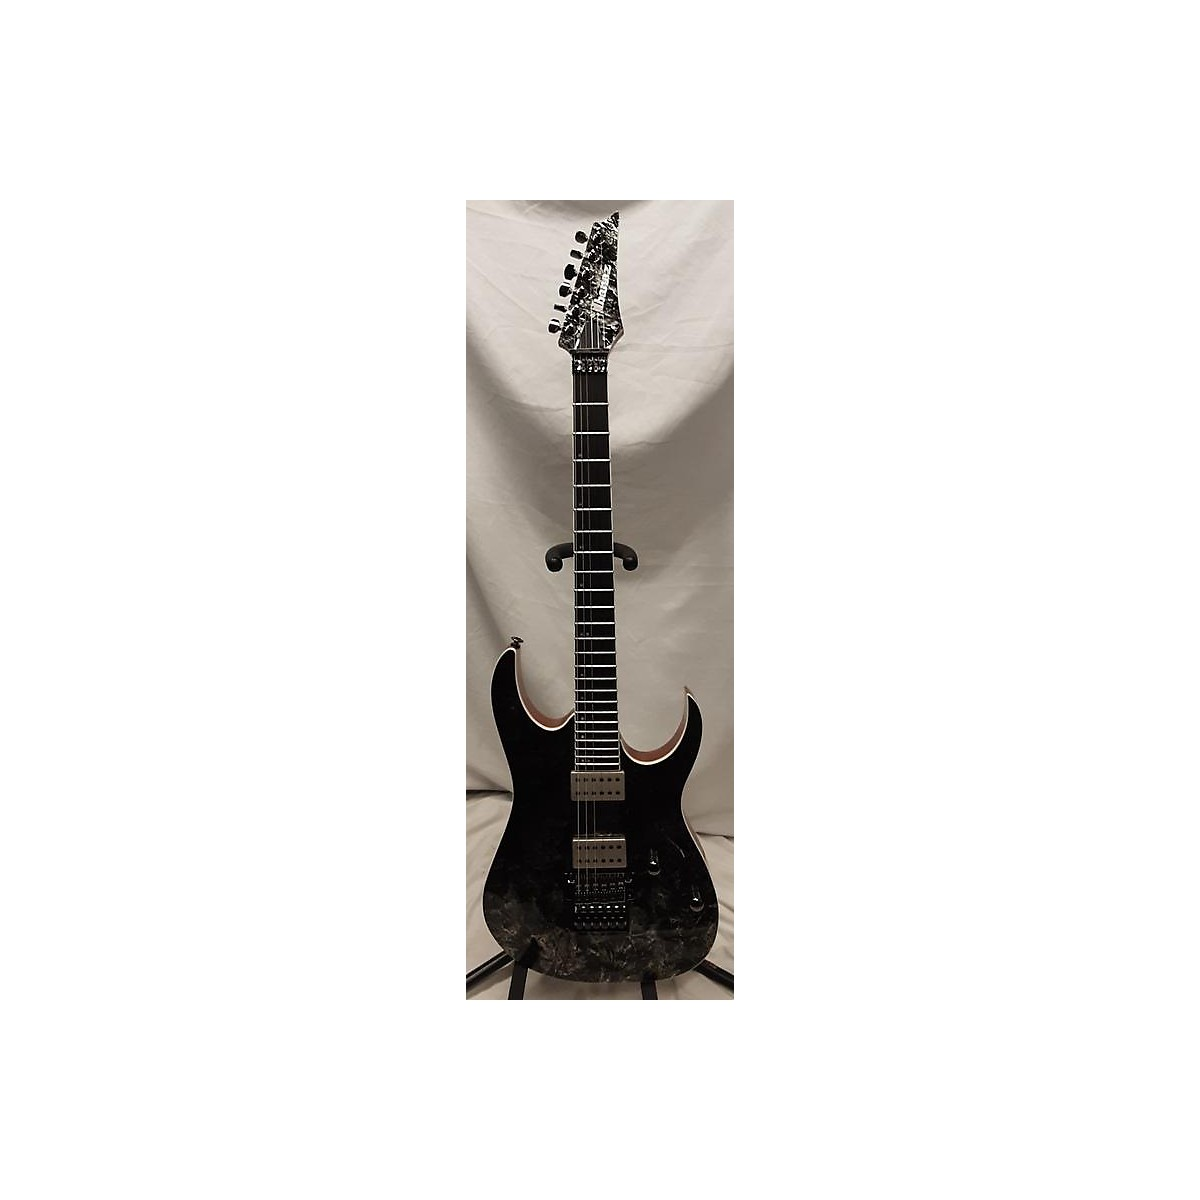 Ibanez RG5320 Solid Body Electric Guitar